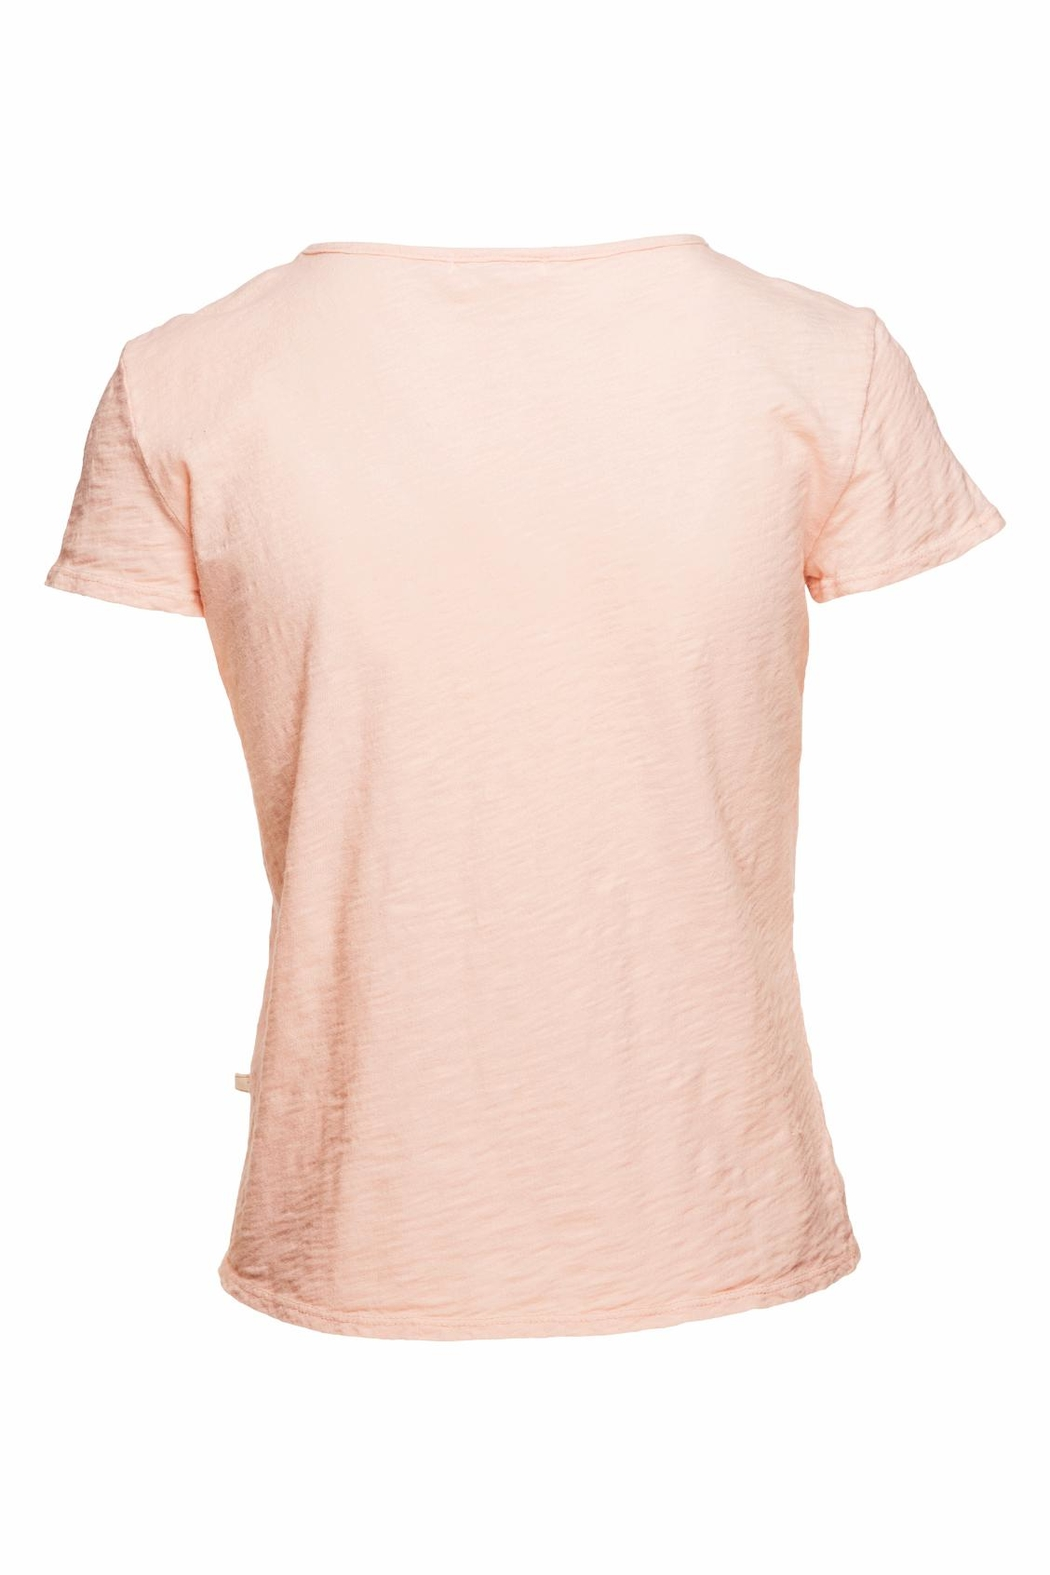 NYTT Blush Distressed Tee - Front Full Image